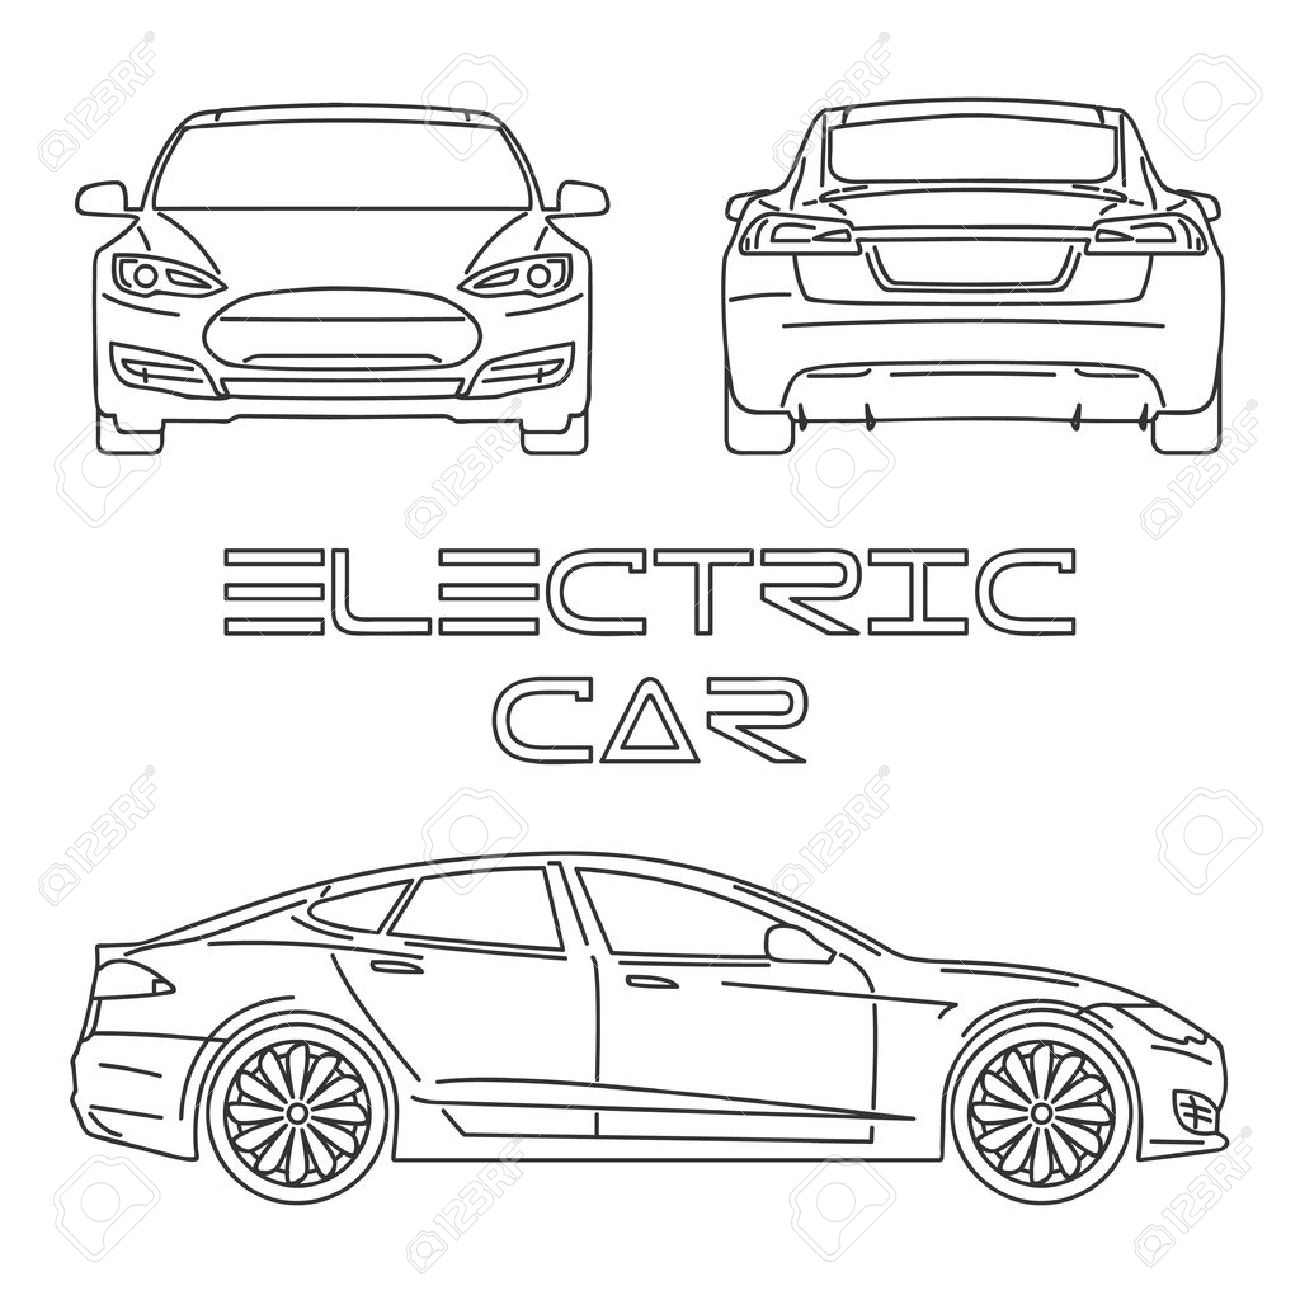 diagram of back of car